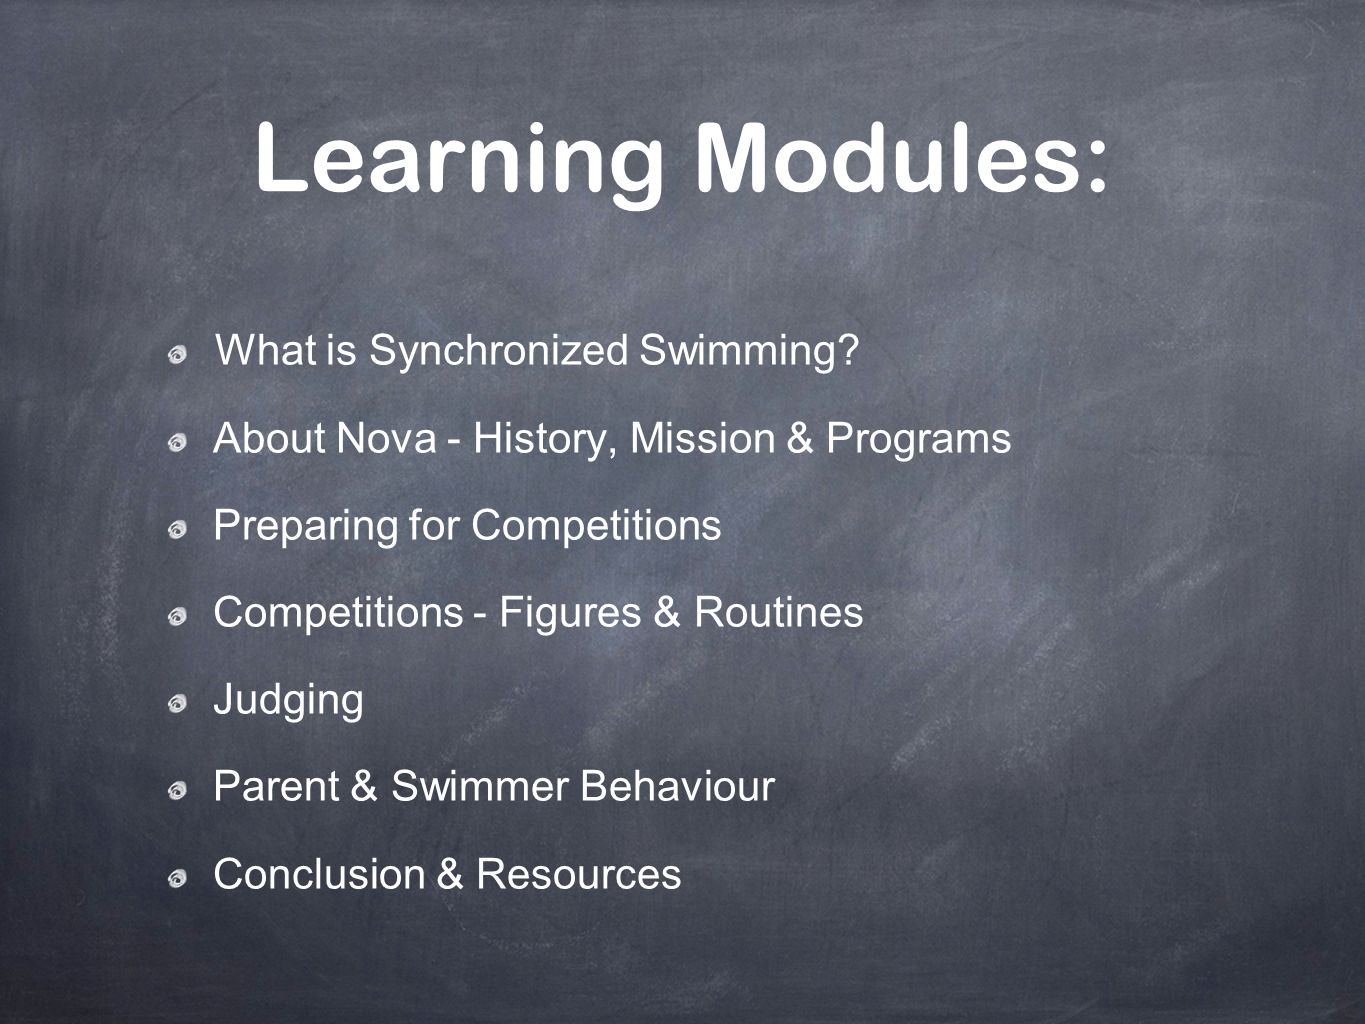 Learning Modules: What is Synchronized Swimming